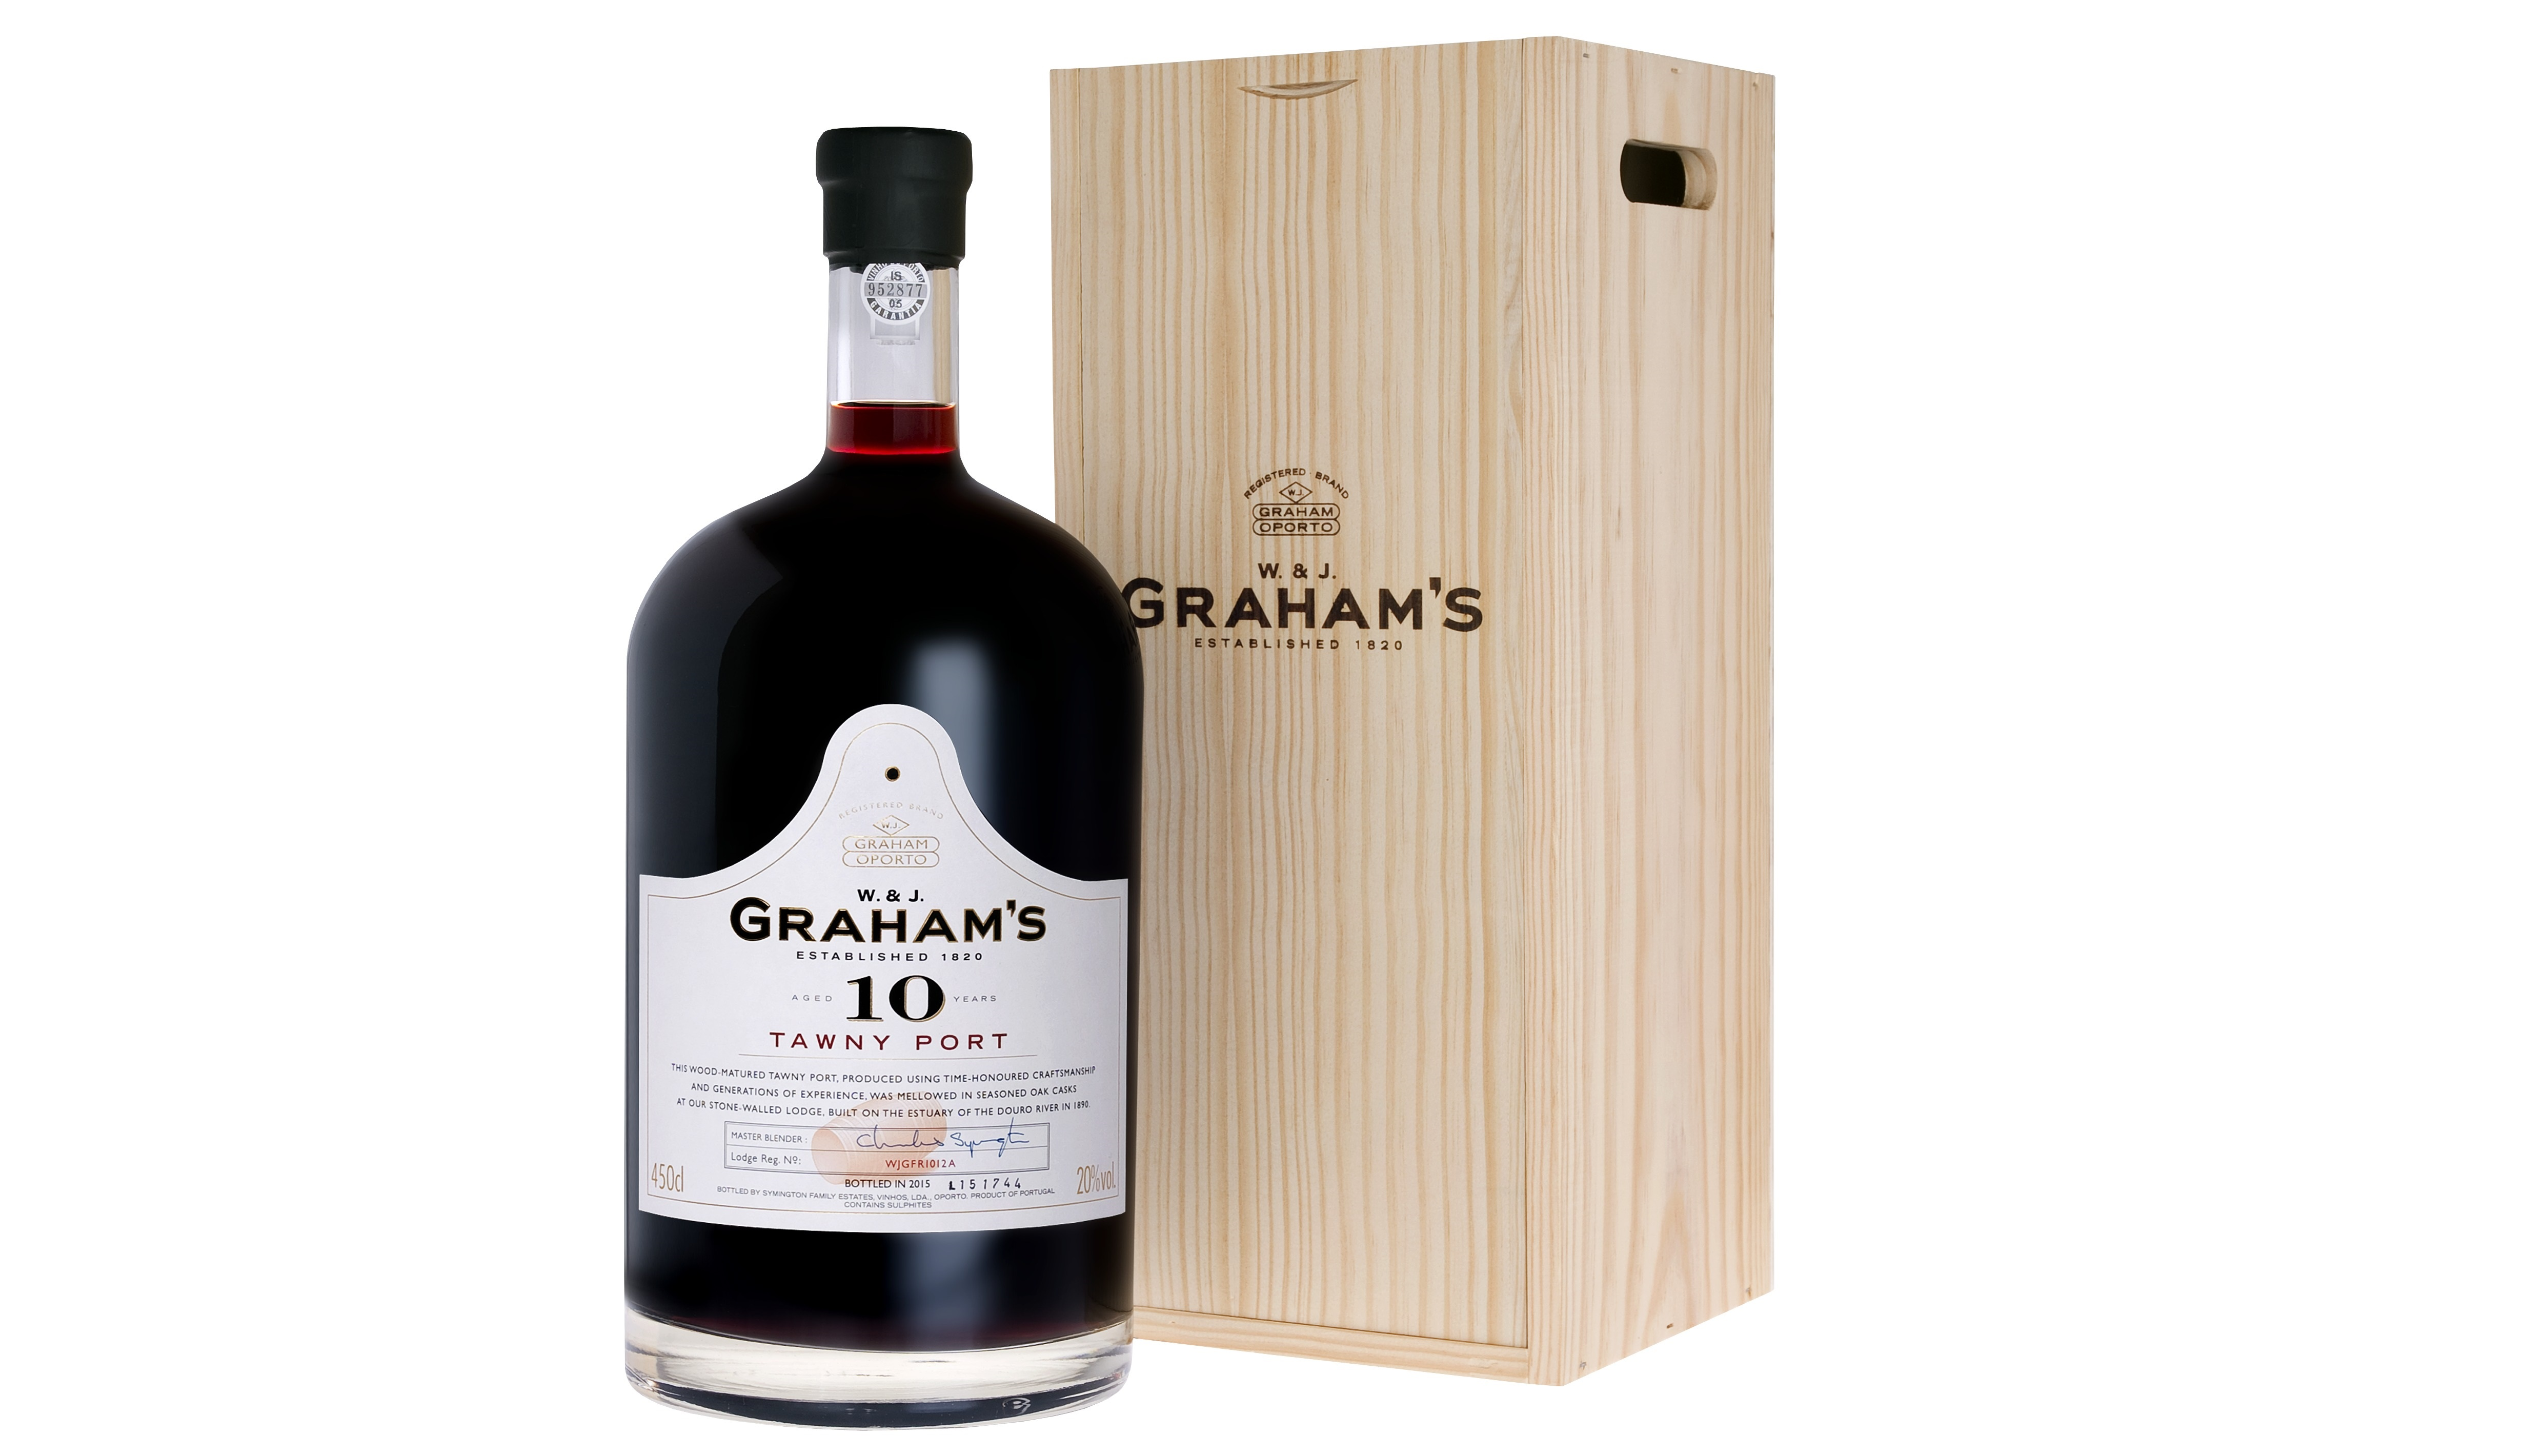 graham 39 s 10 year old tawny port 4 5 liter mckili. Black Bedroom Furniture Sets. Home Design Ideas